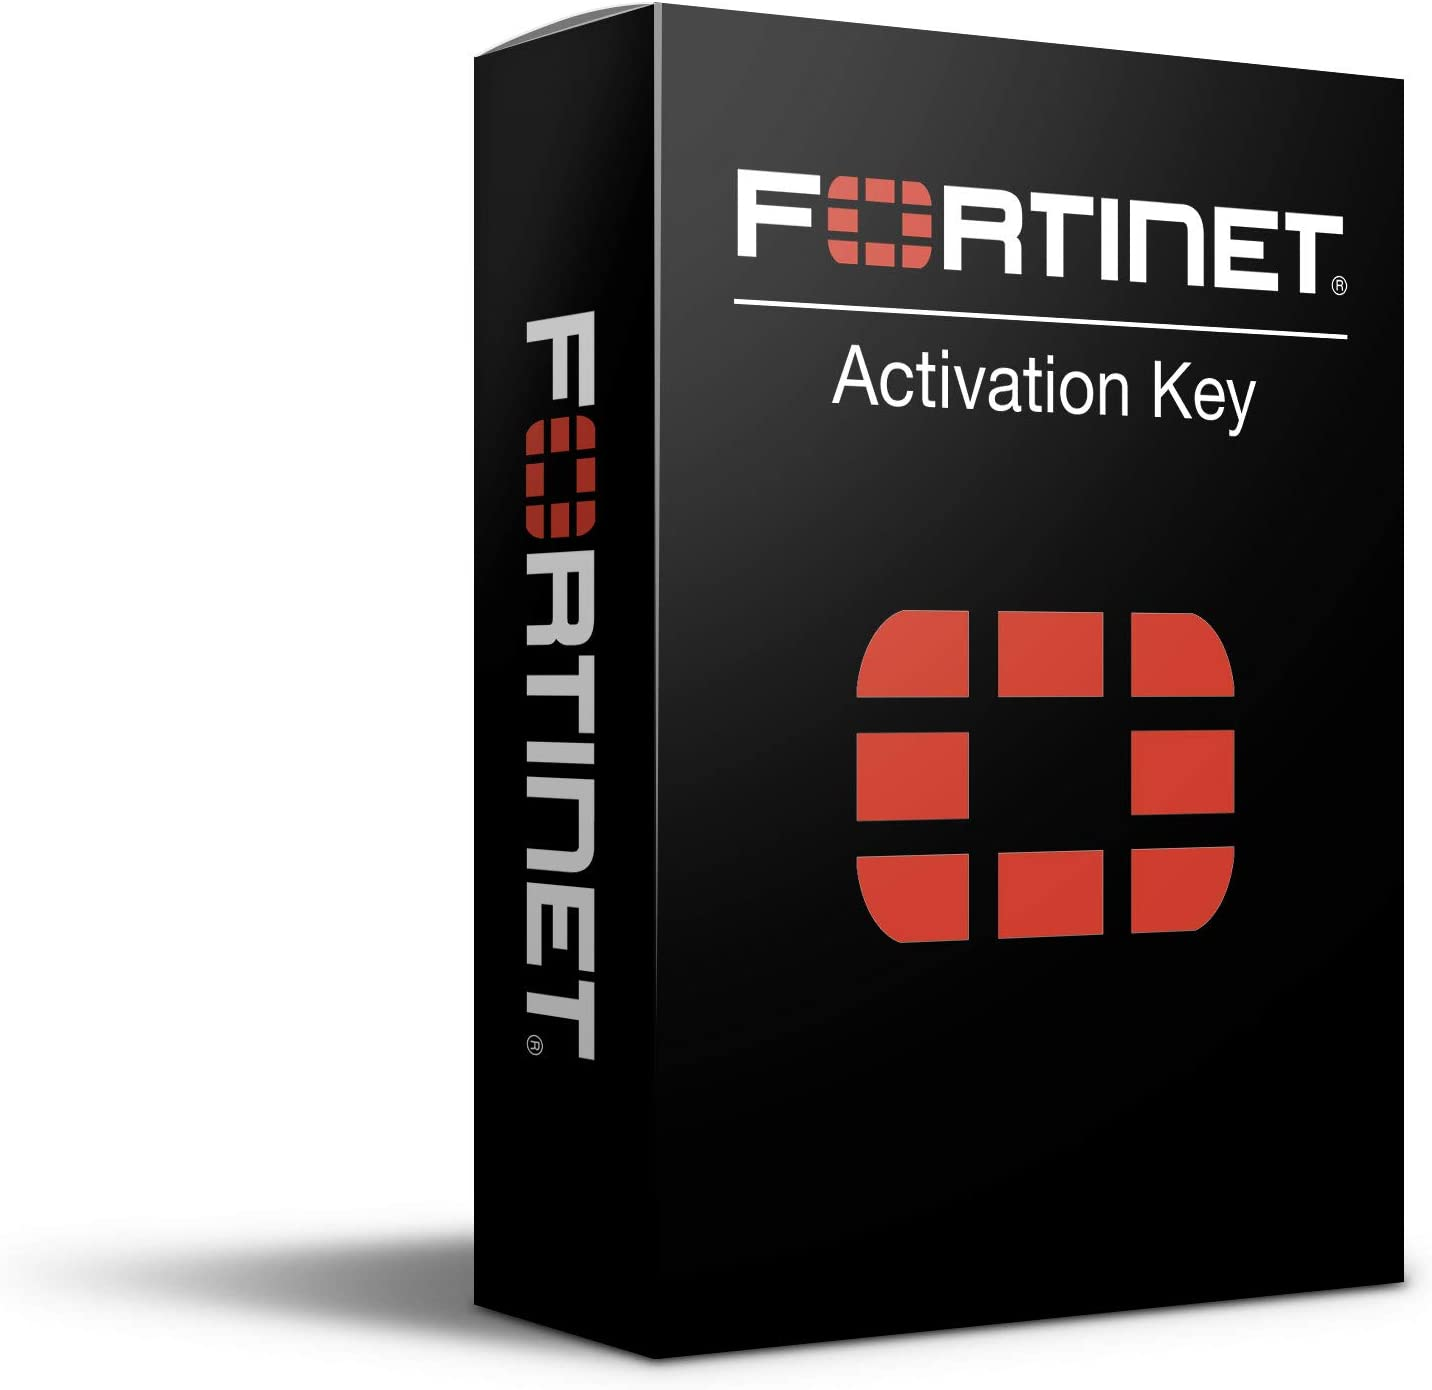 Fortinet FortiADC-200D 1 Year FortiADC Limited price sale Service Popular brand FC-1 WAF Security